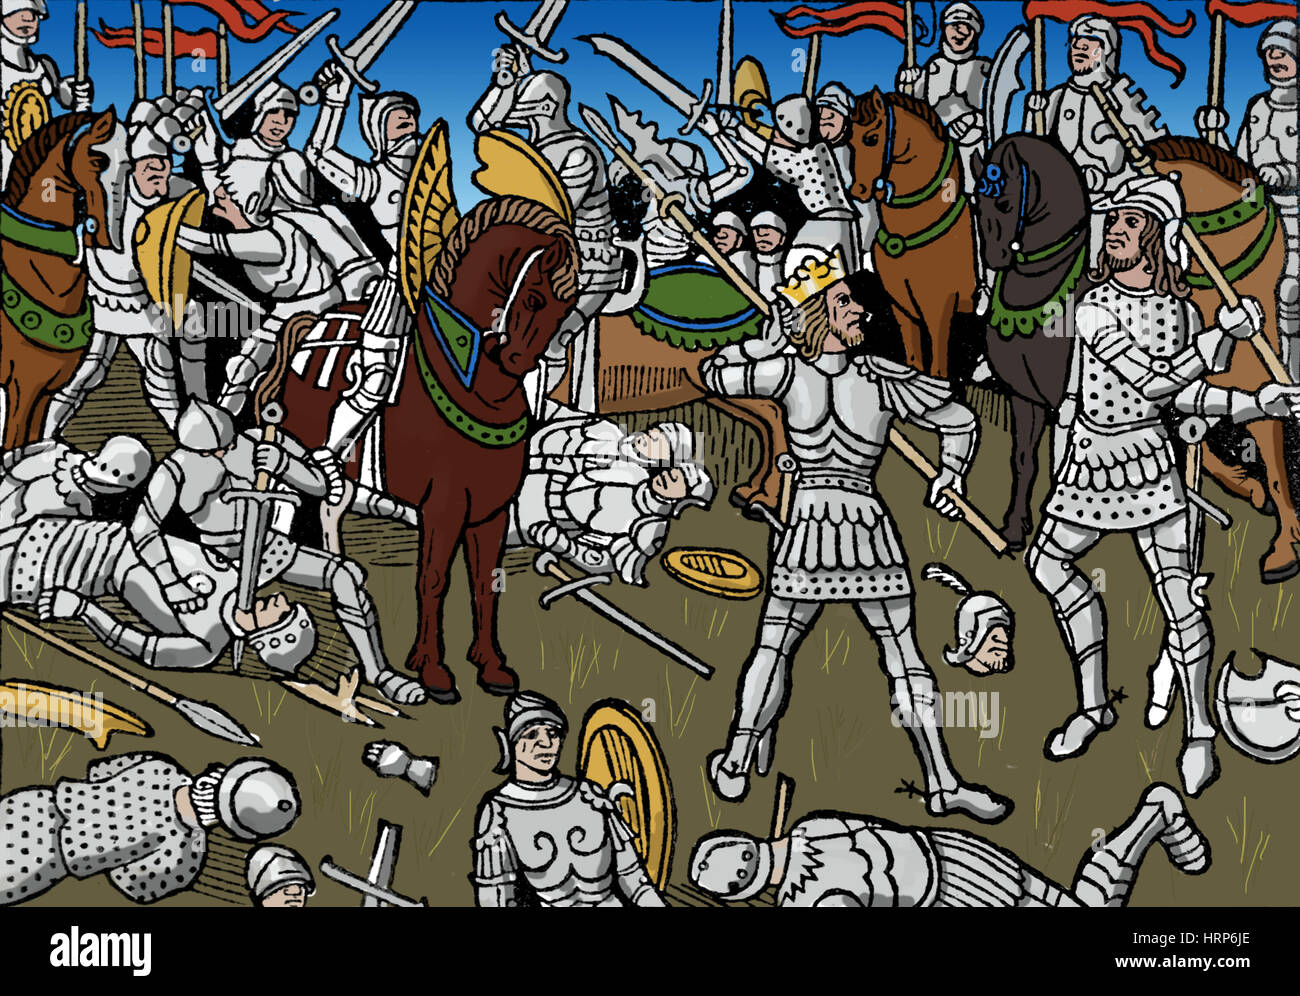 Knights, 1489 - Stock Image